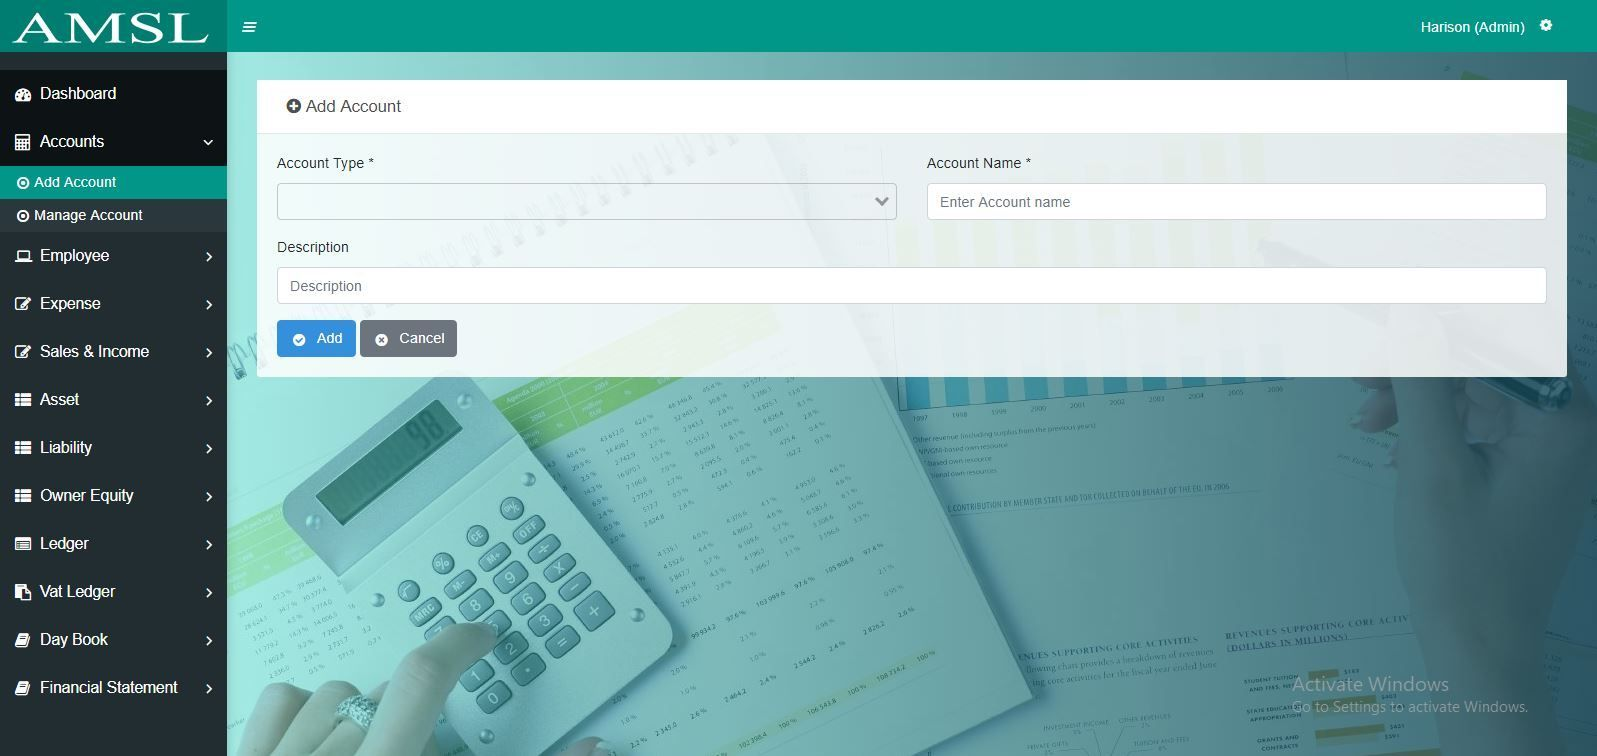 AMSL - Service Based Accounting Management System  Screenshot 14